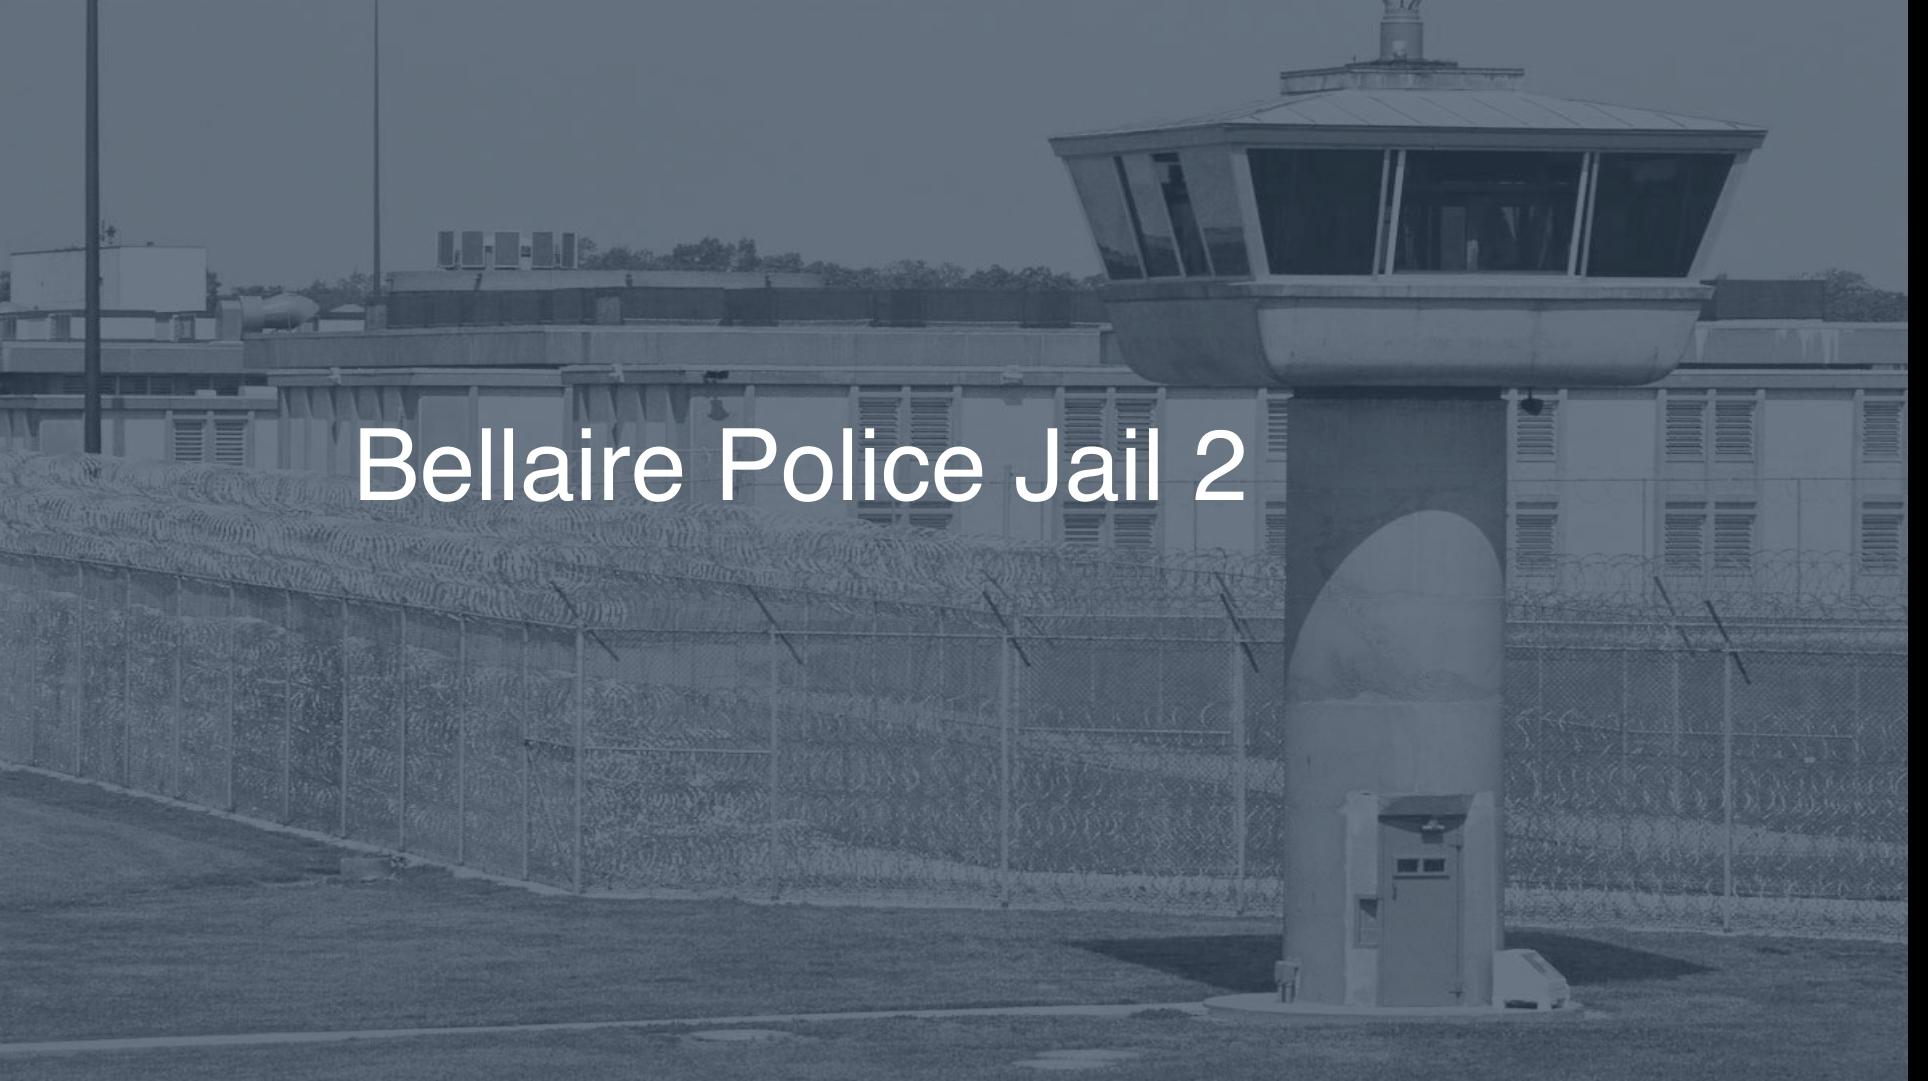 Bellaire Police Jail correctional facility picture